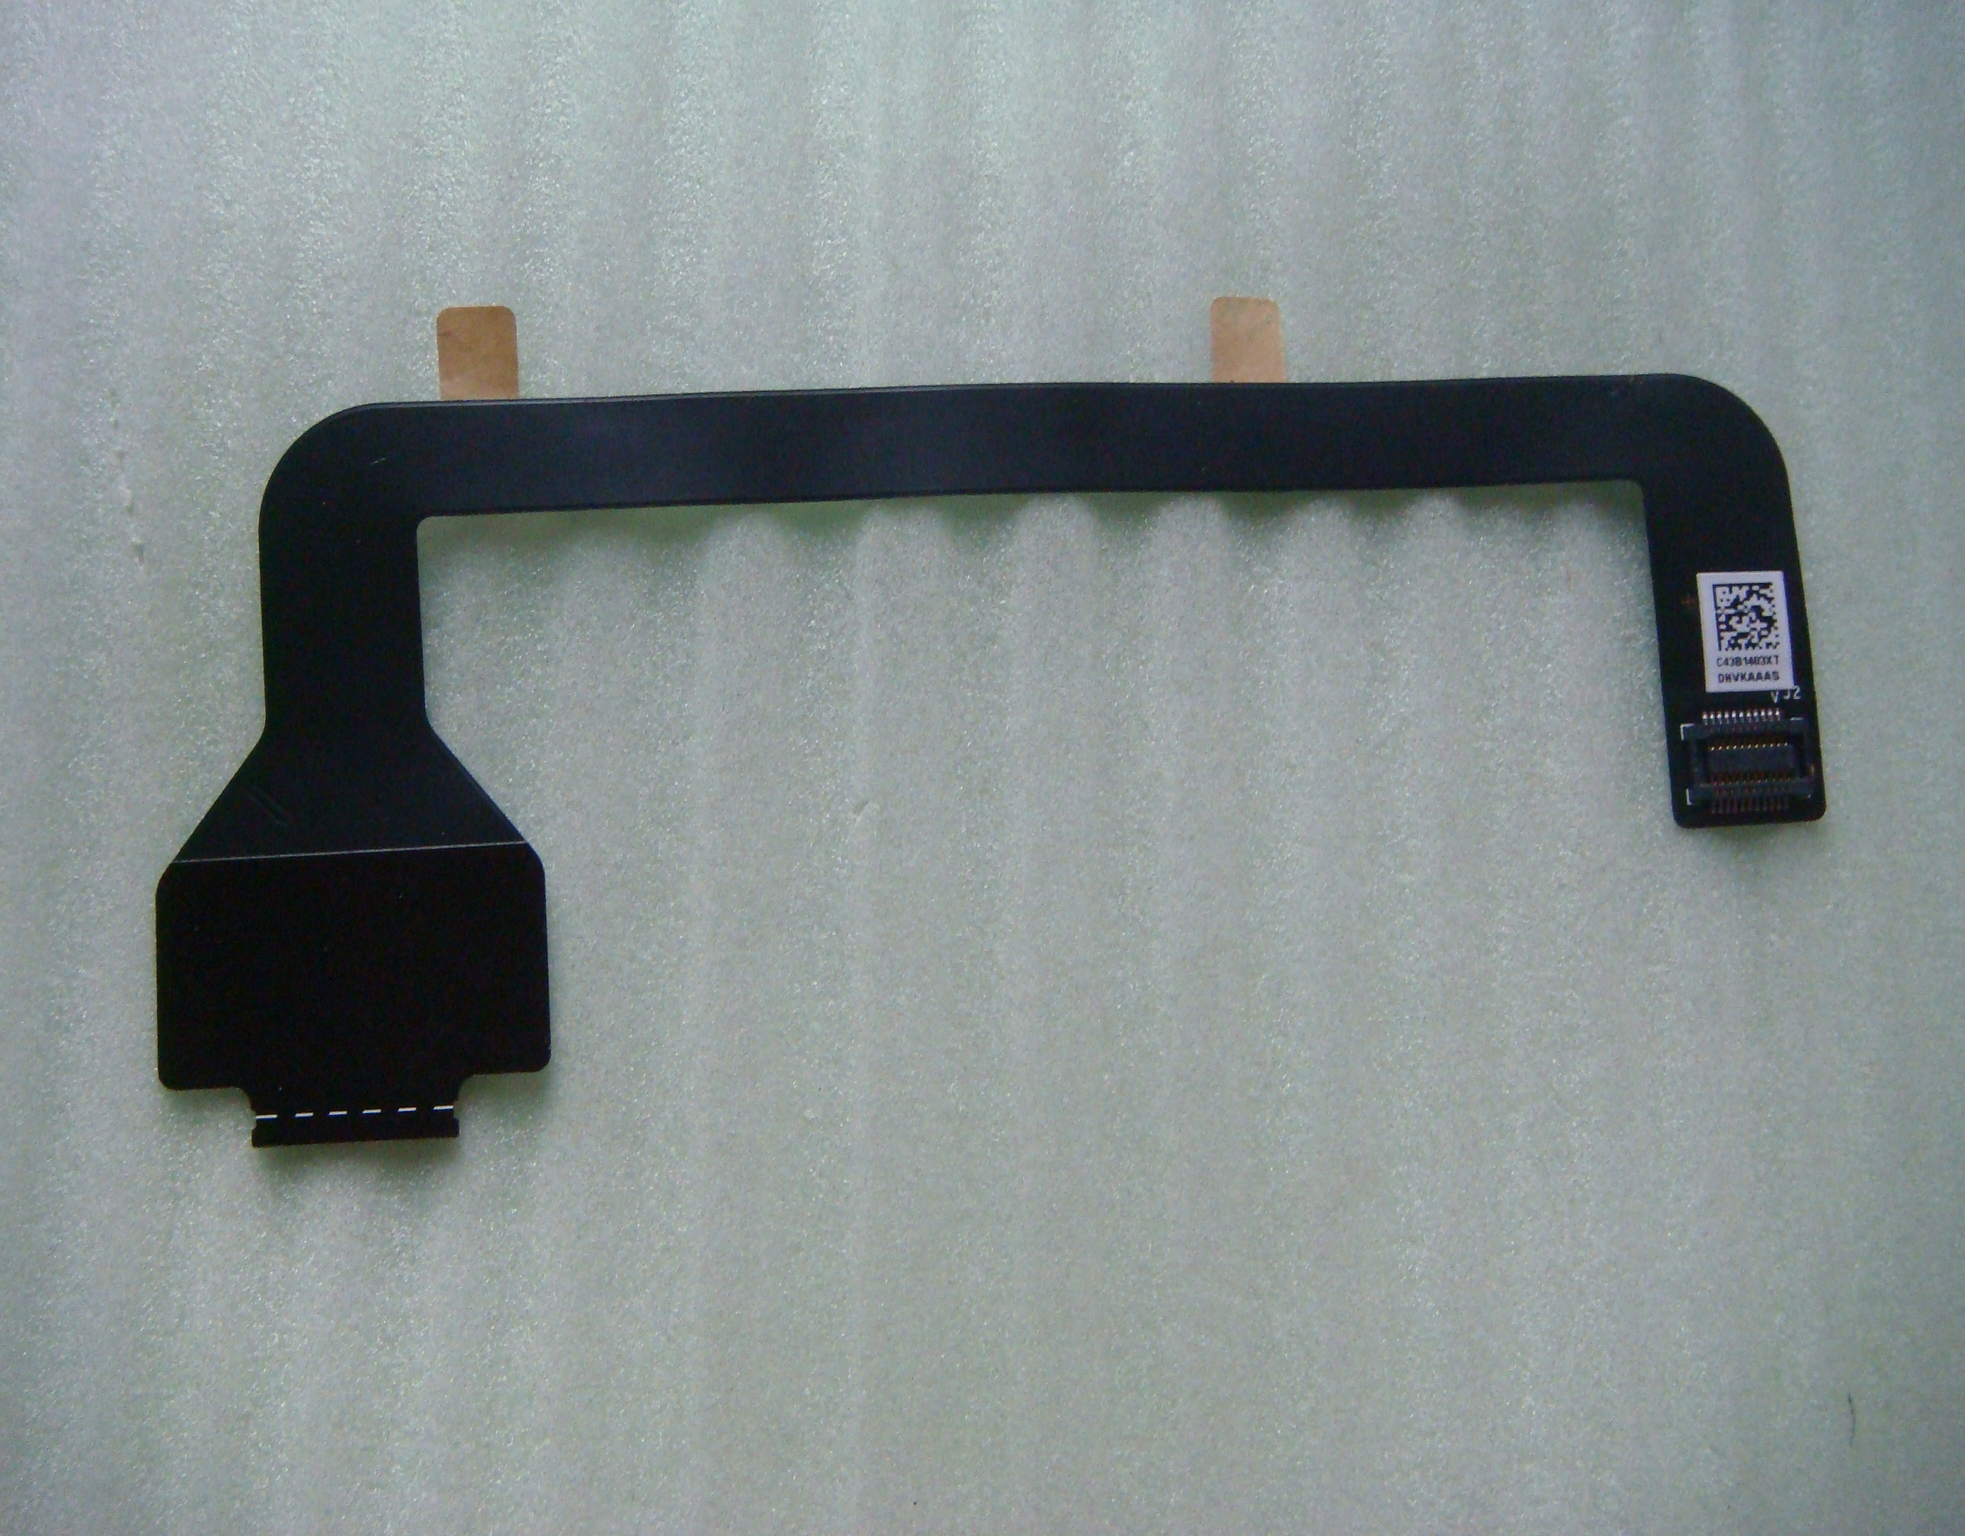 TouchPad Cable for MacBook Pro 15 A1286 821-0832-A 2009-2011